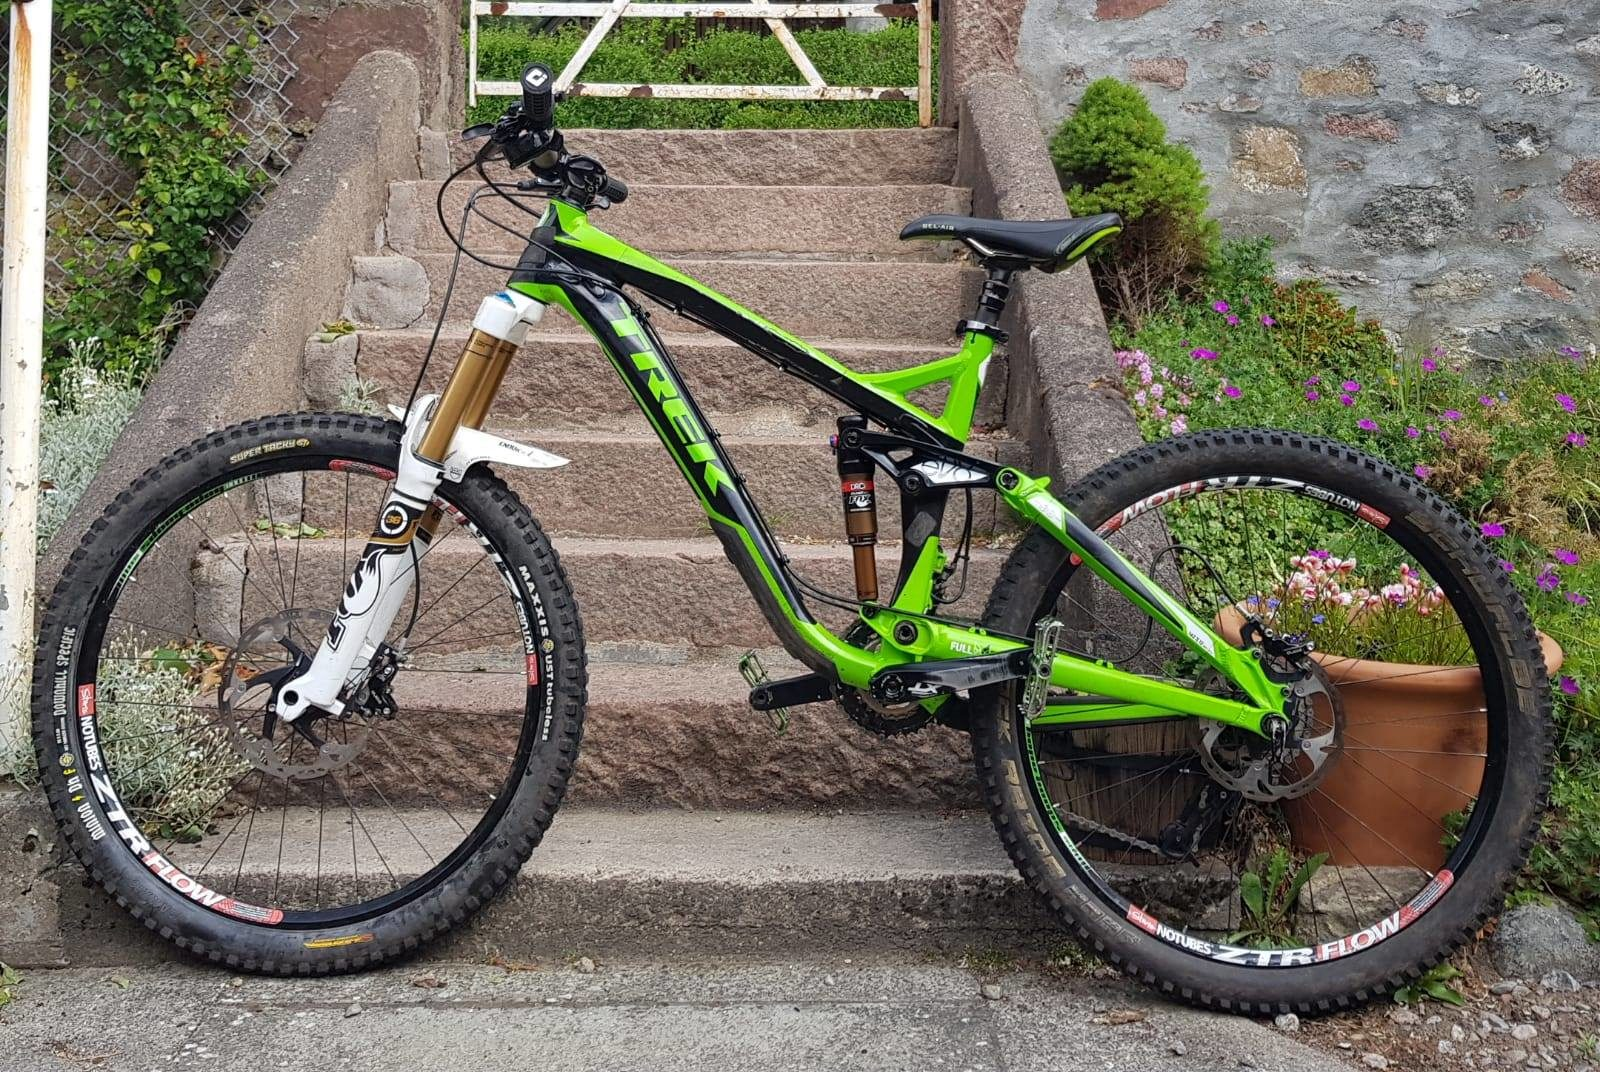 The bikes were stolen over the weekend